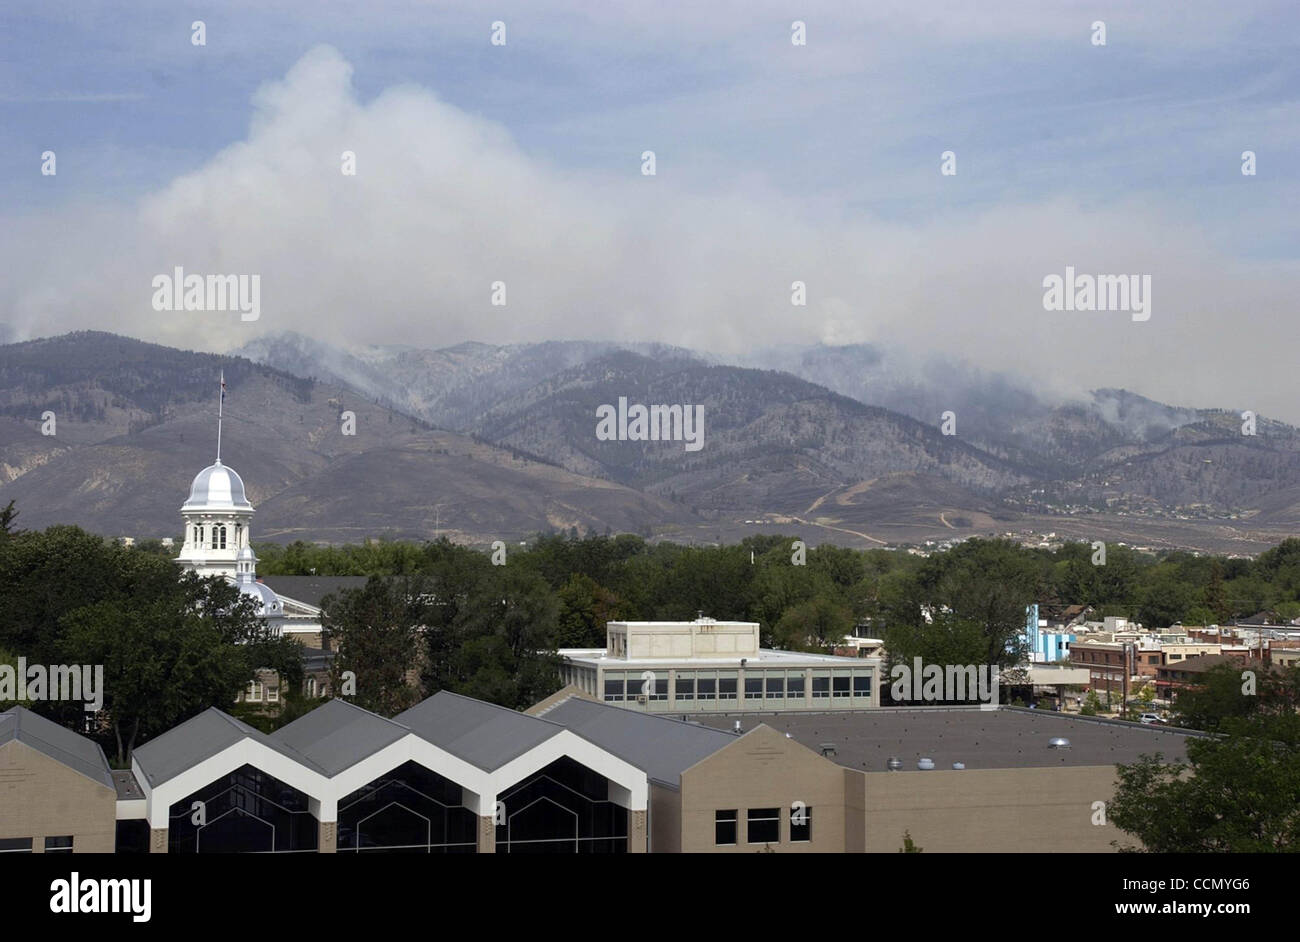 Jul 16, 2004; Carson City, CA, USA; The Waterfall fire continued to burn on the West side of Carson City Friday, July 16, 2004. The fire at one point threatened the Nevada Capitol along the Southern part. Stock Photo